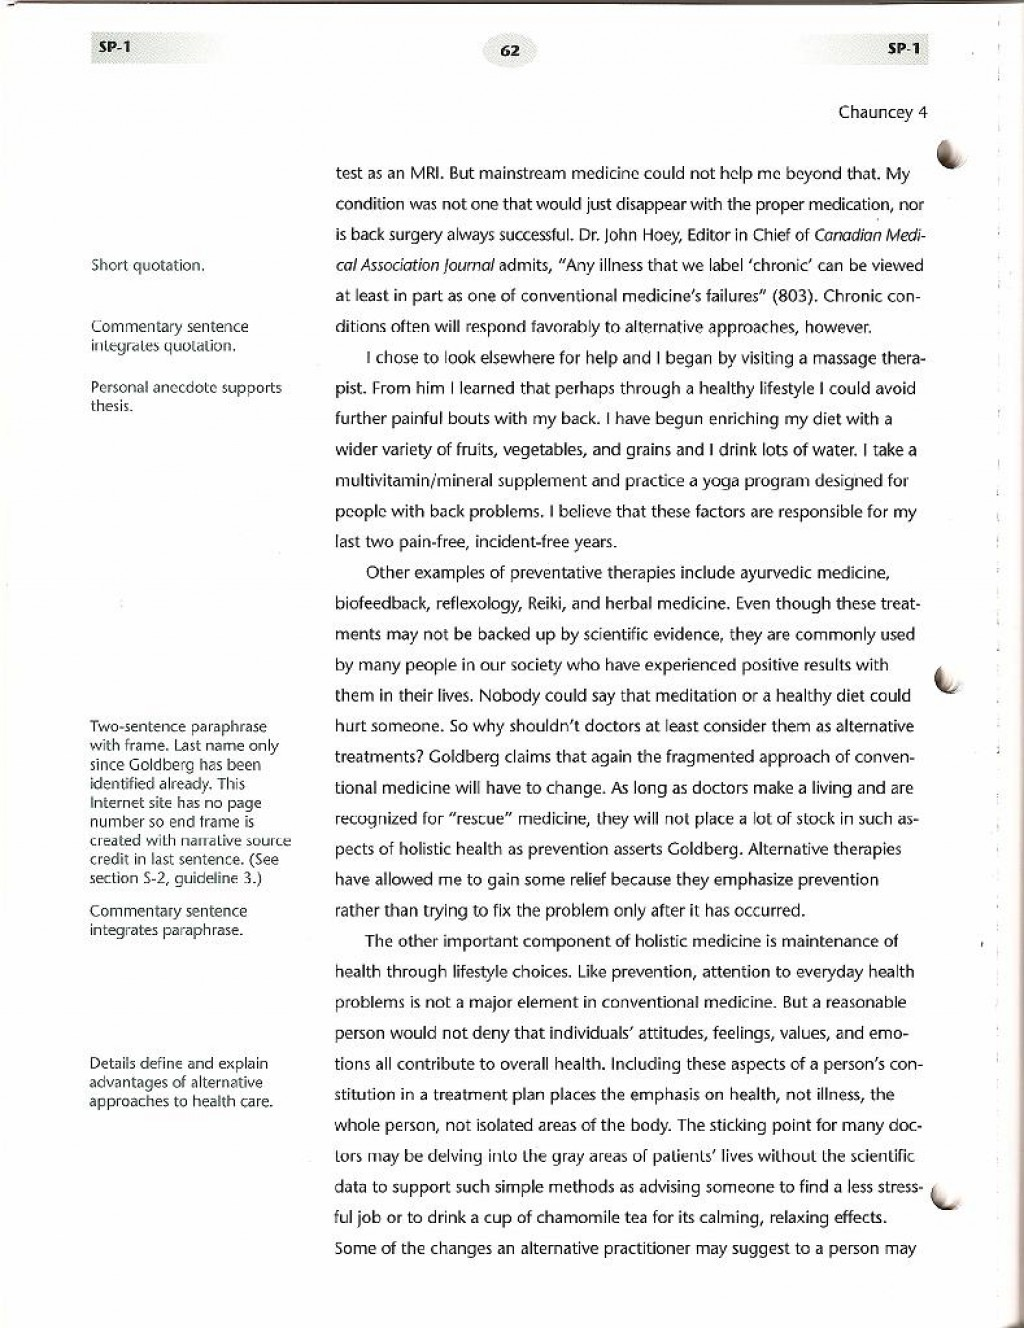 005 Research Paper Foto 93605 Cyber Terrorism Imposing Essay Large